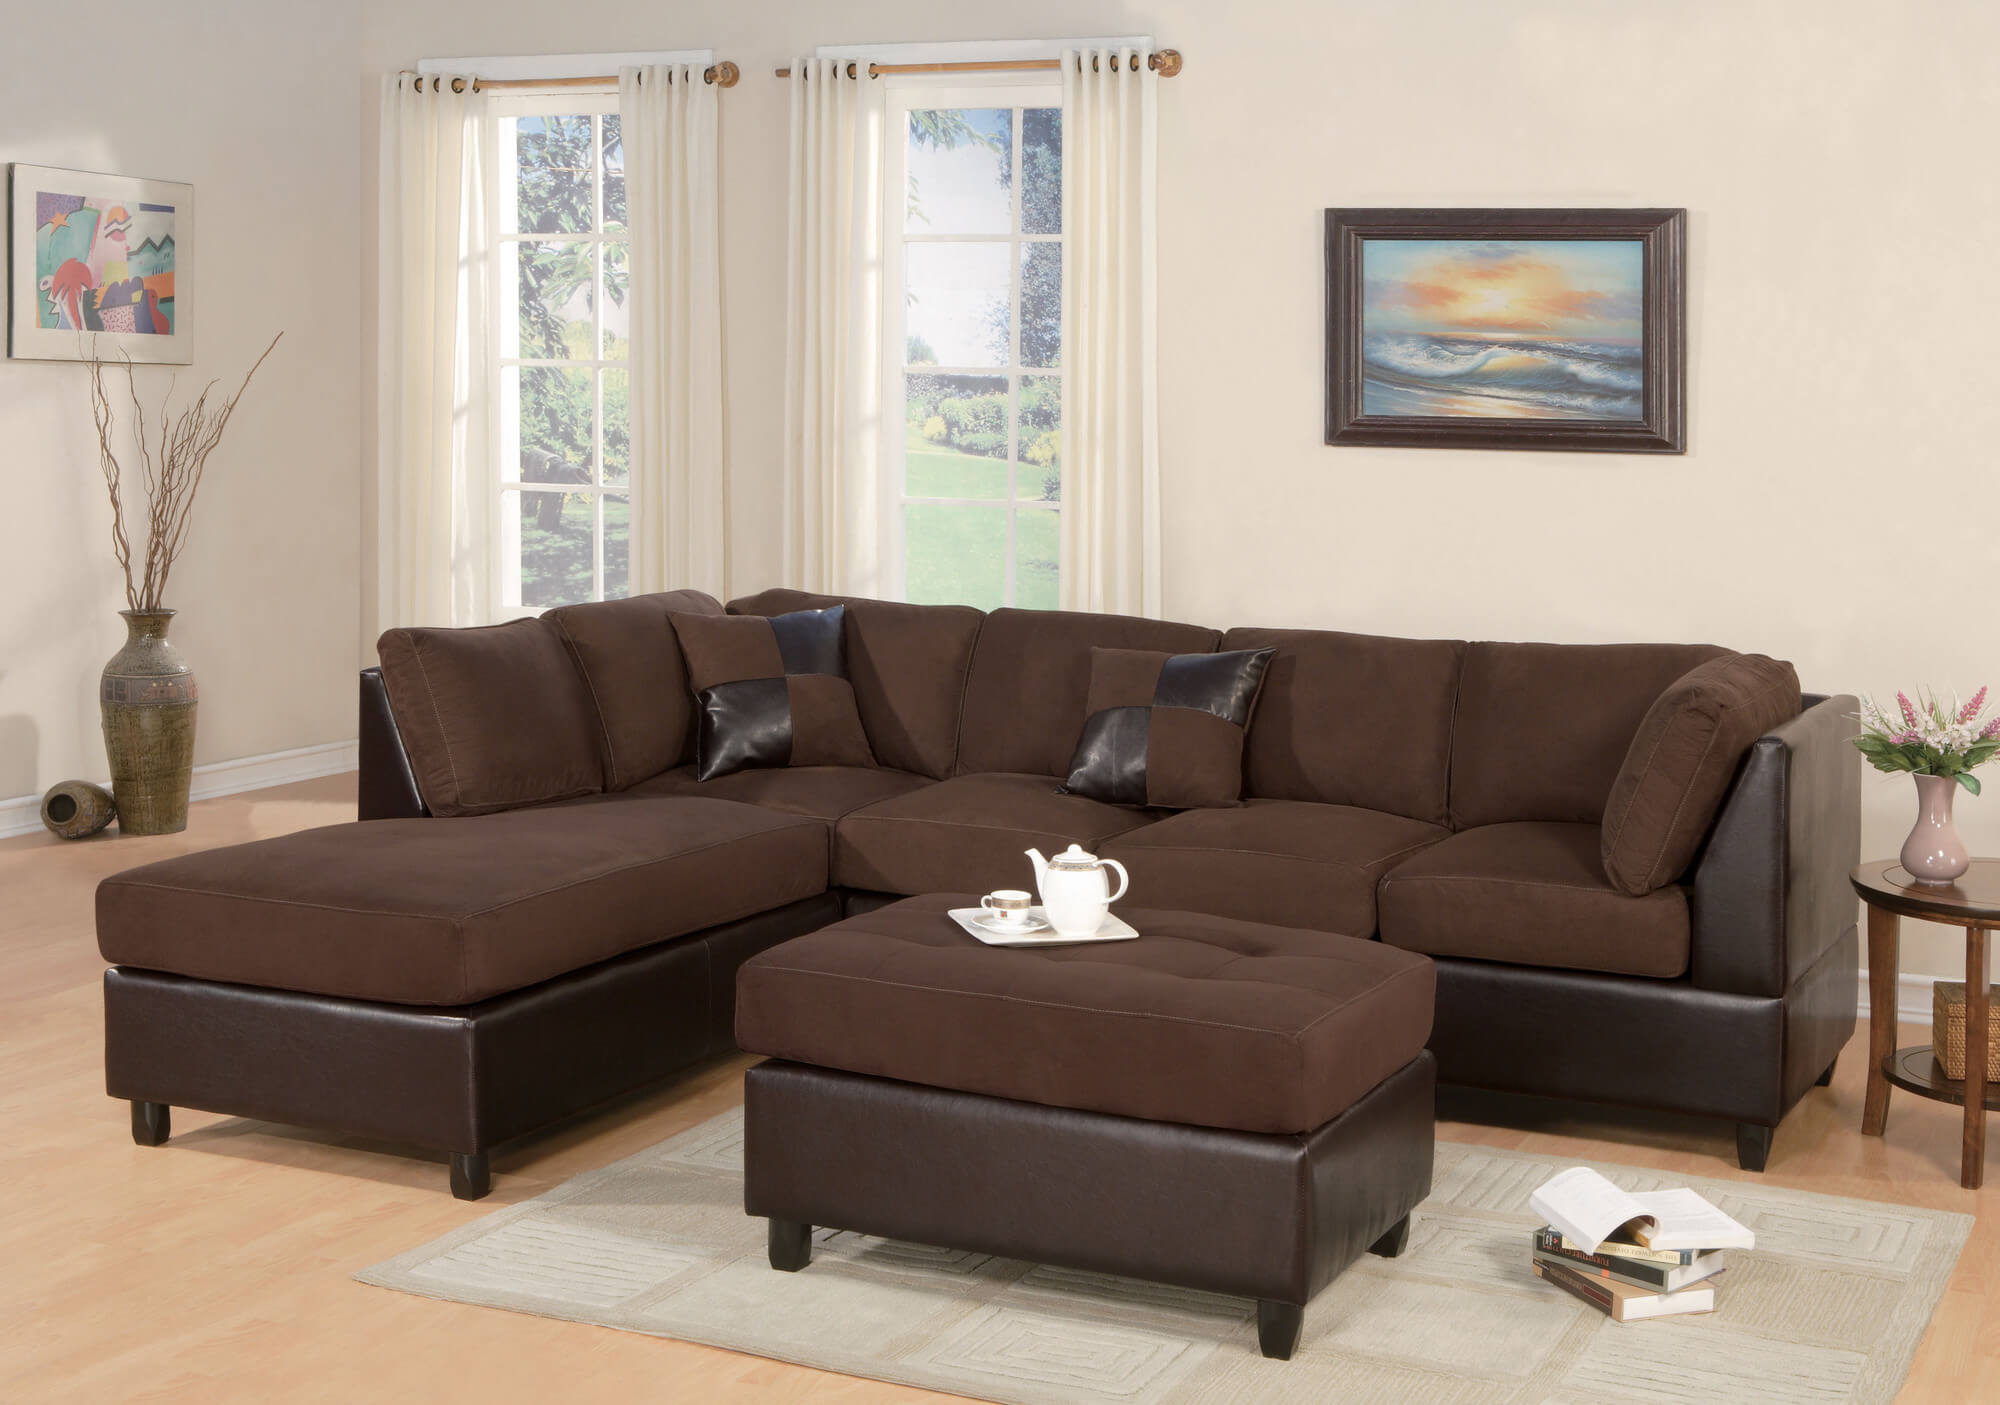 Beautiful Affordable Sectional Sofas 97 In Living Room Sofa Ideas with Affordable Sectional Sofas